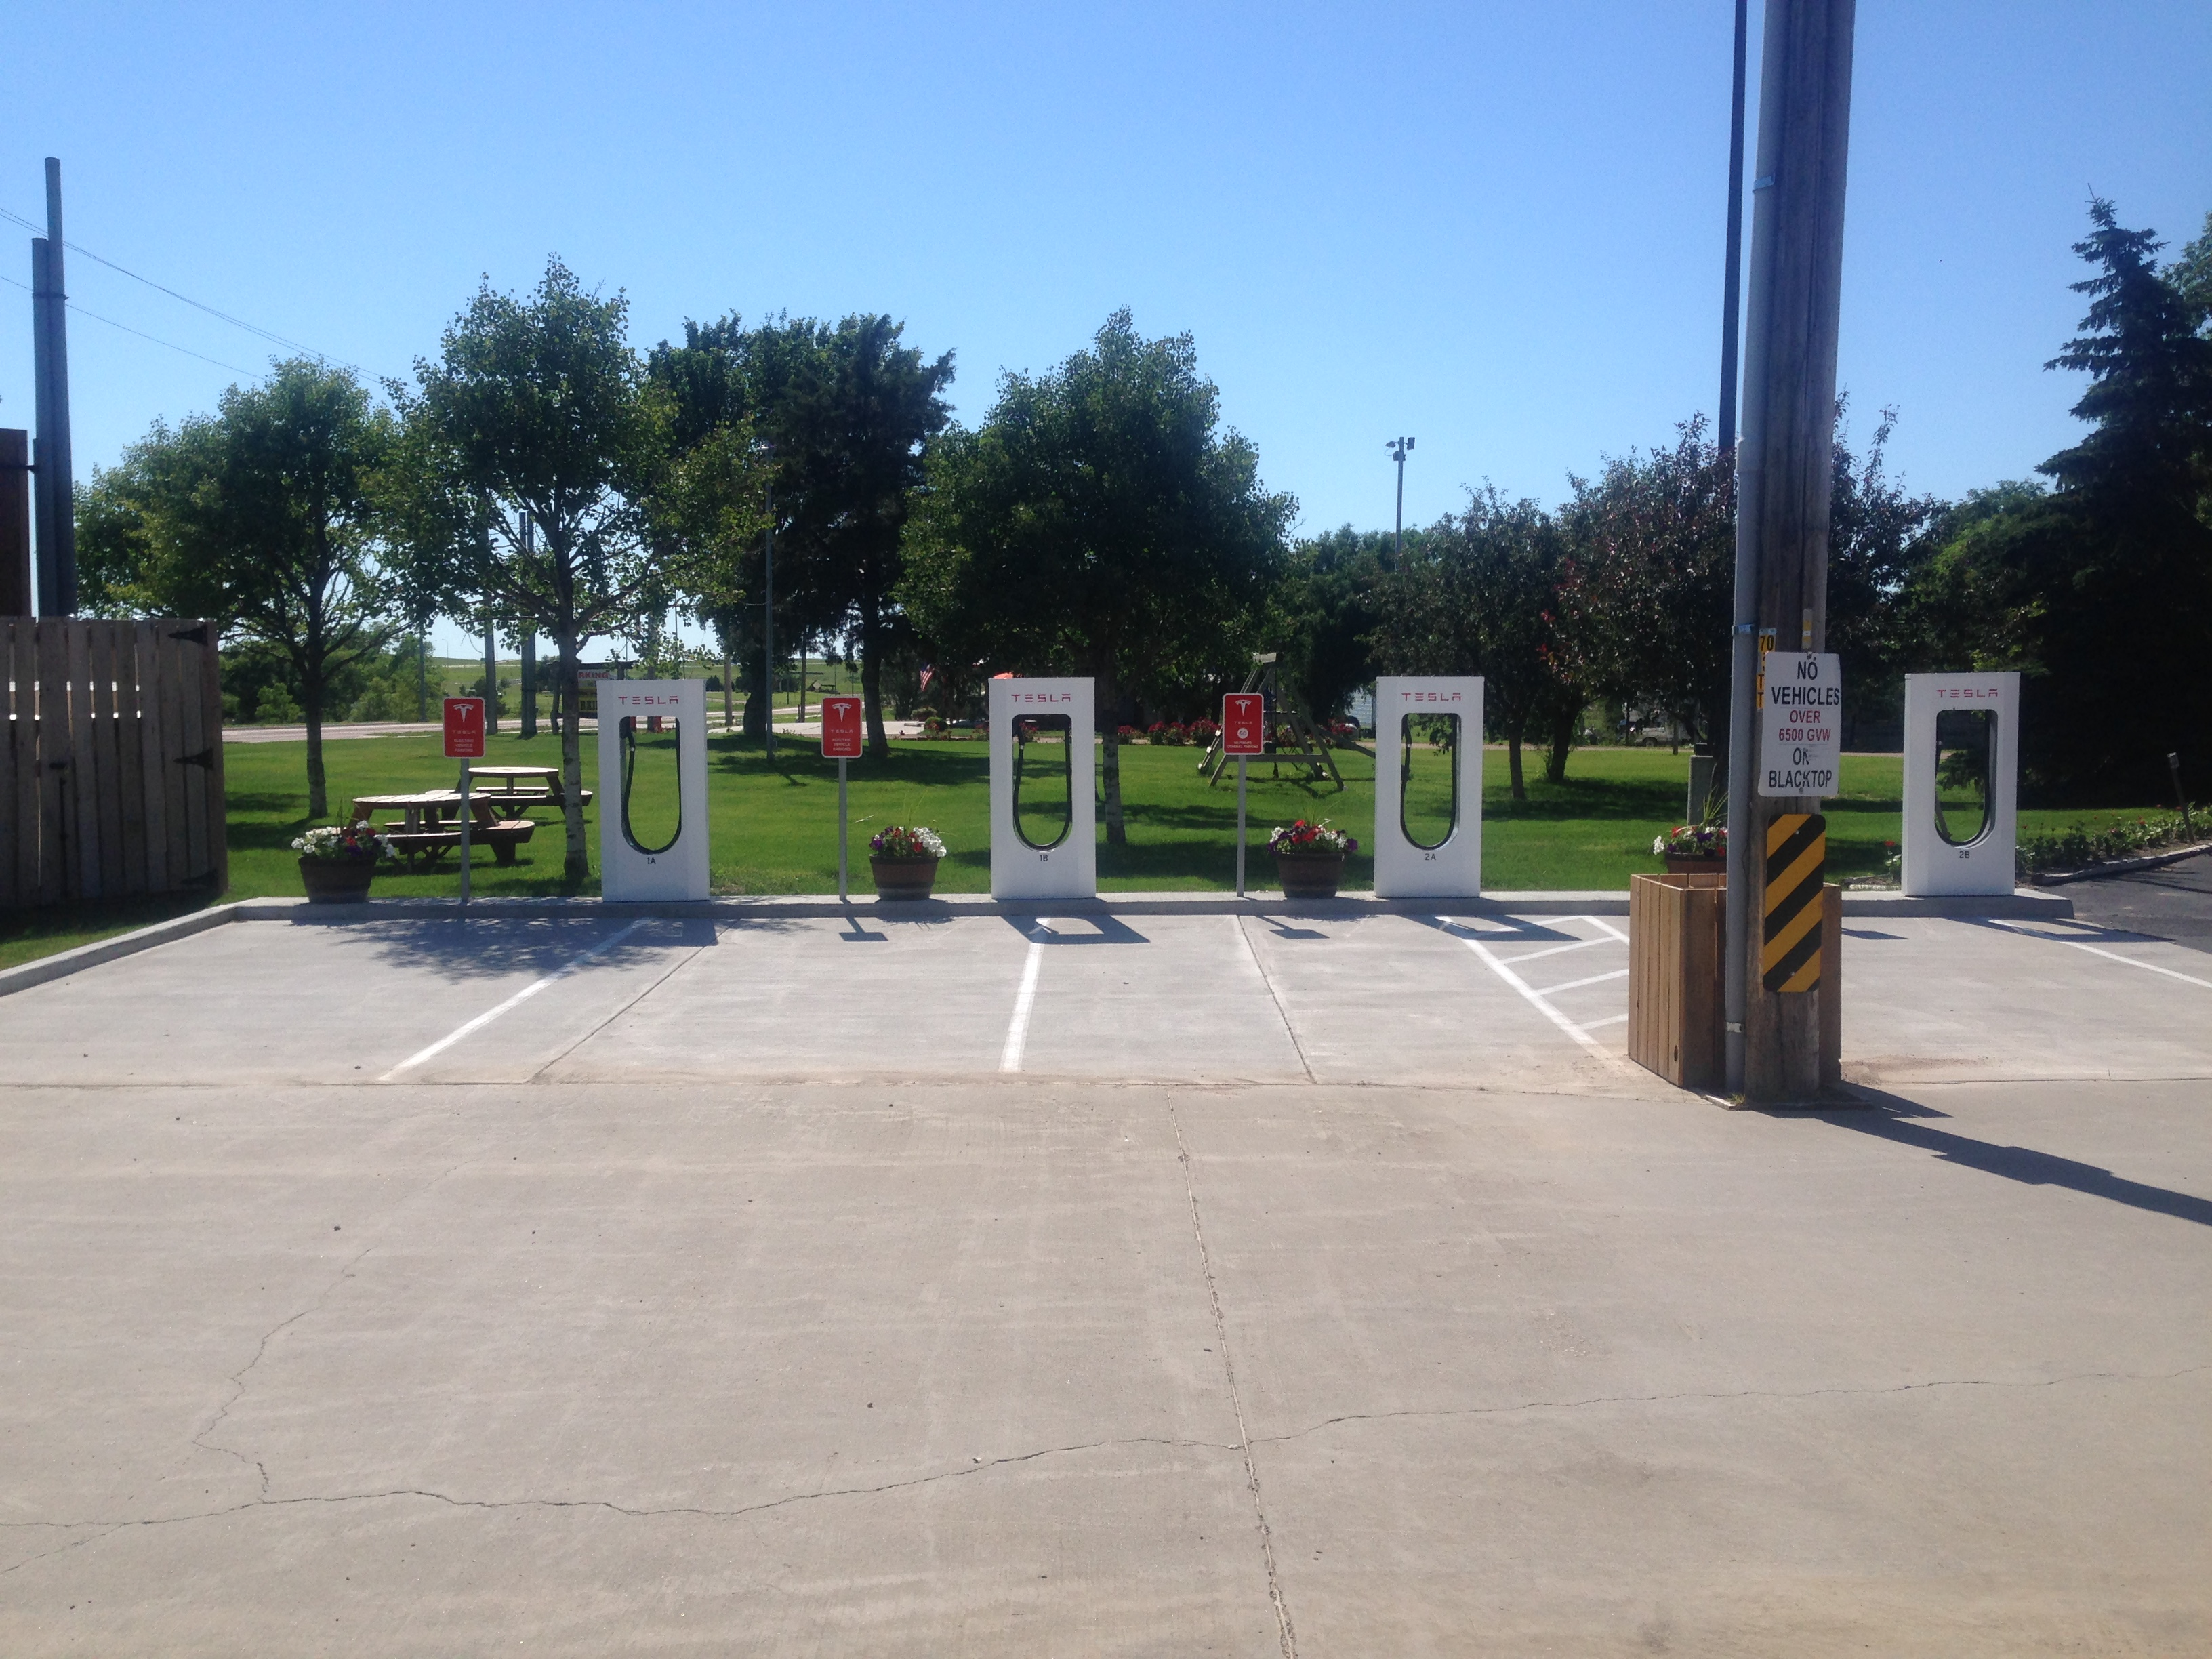 Tesla chargers in Murdo, SD